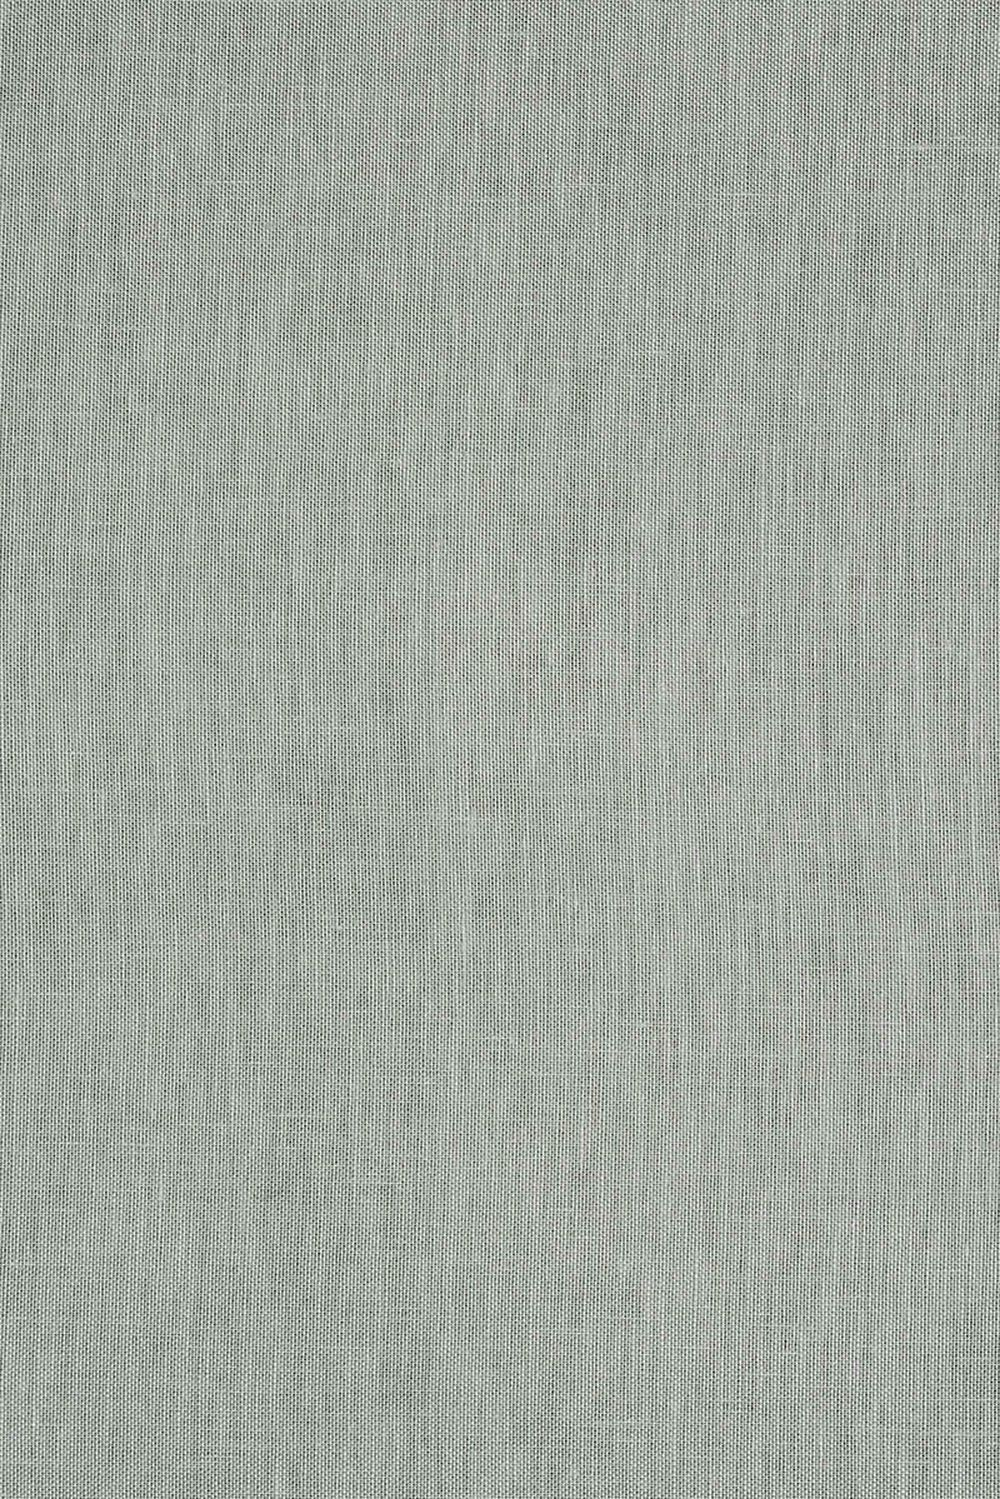 Photo of the fabric Linen* Mist swatch by James Dunlop. Use for Curtains, Accessory. Style of Plain